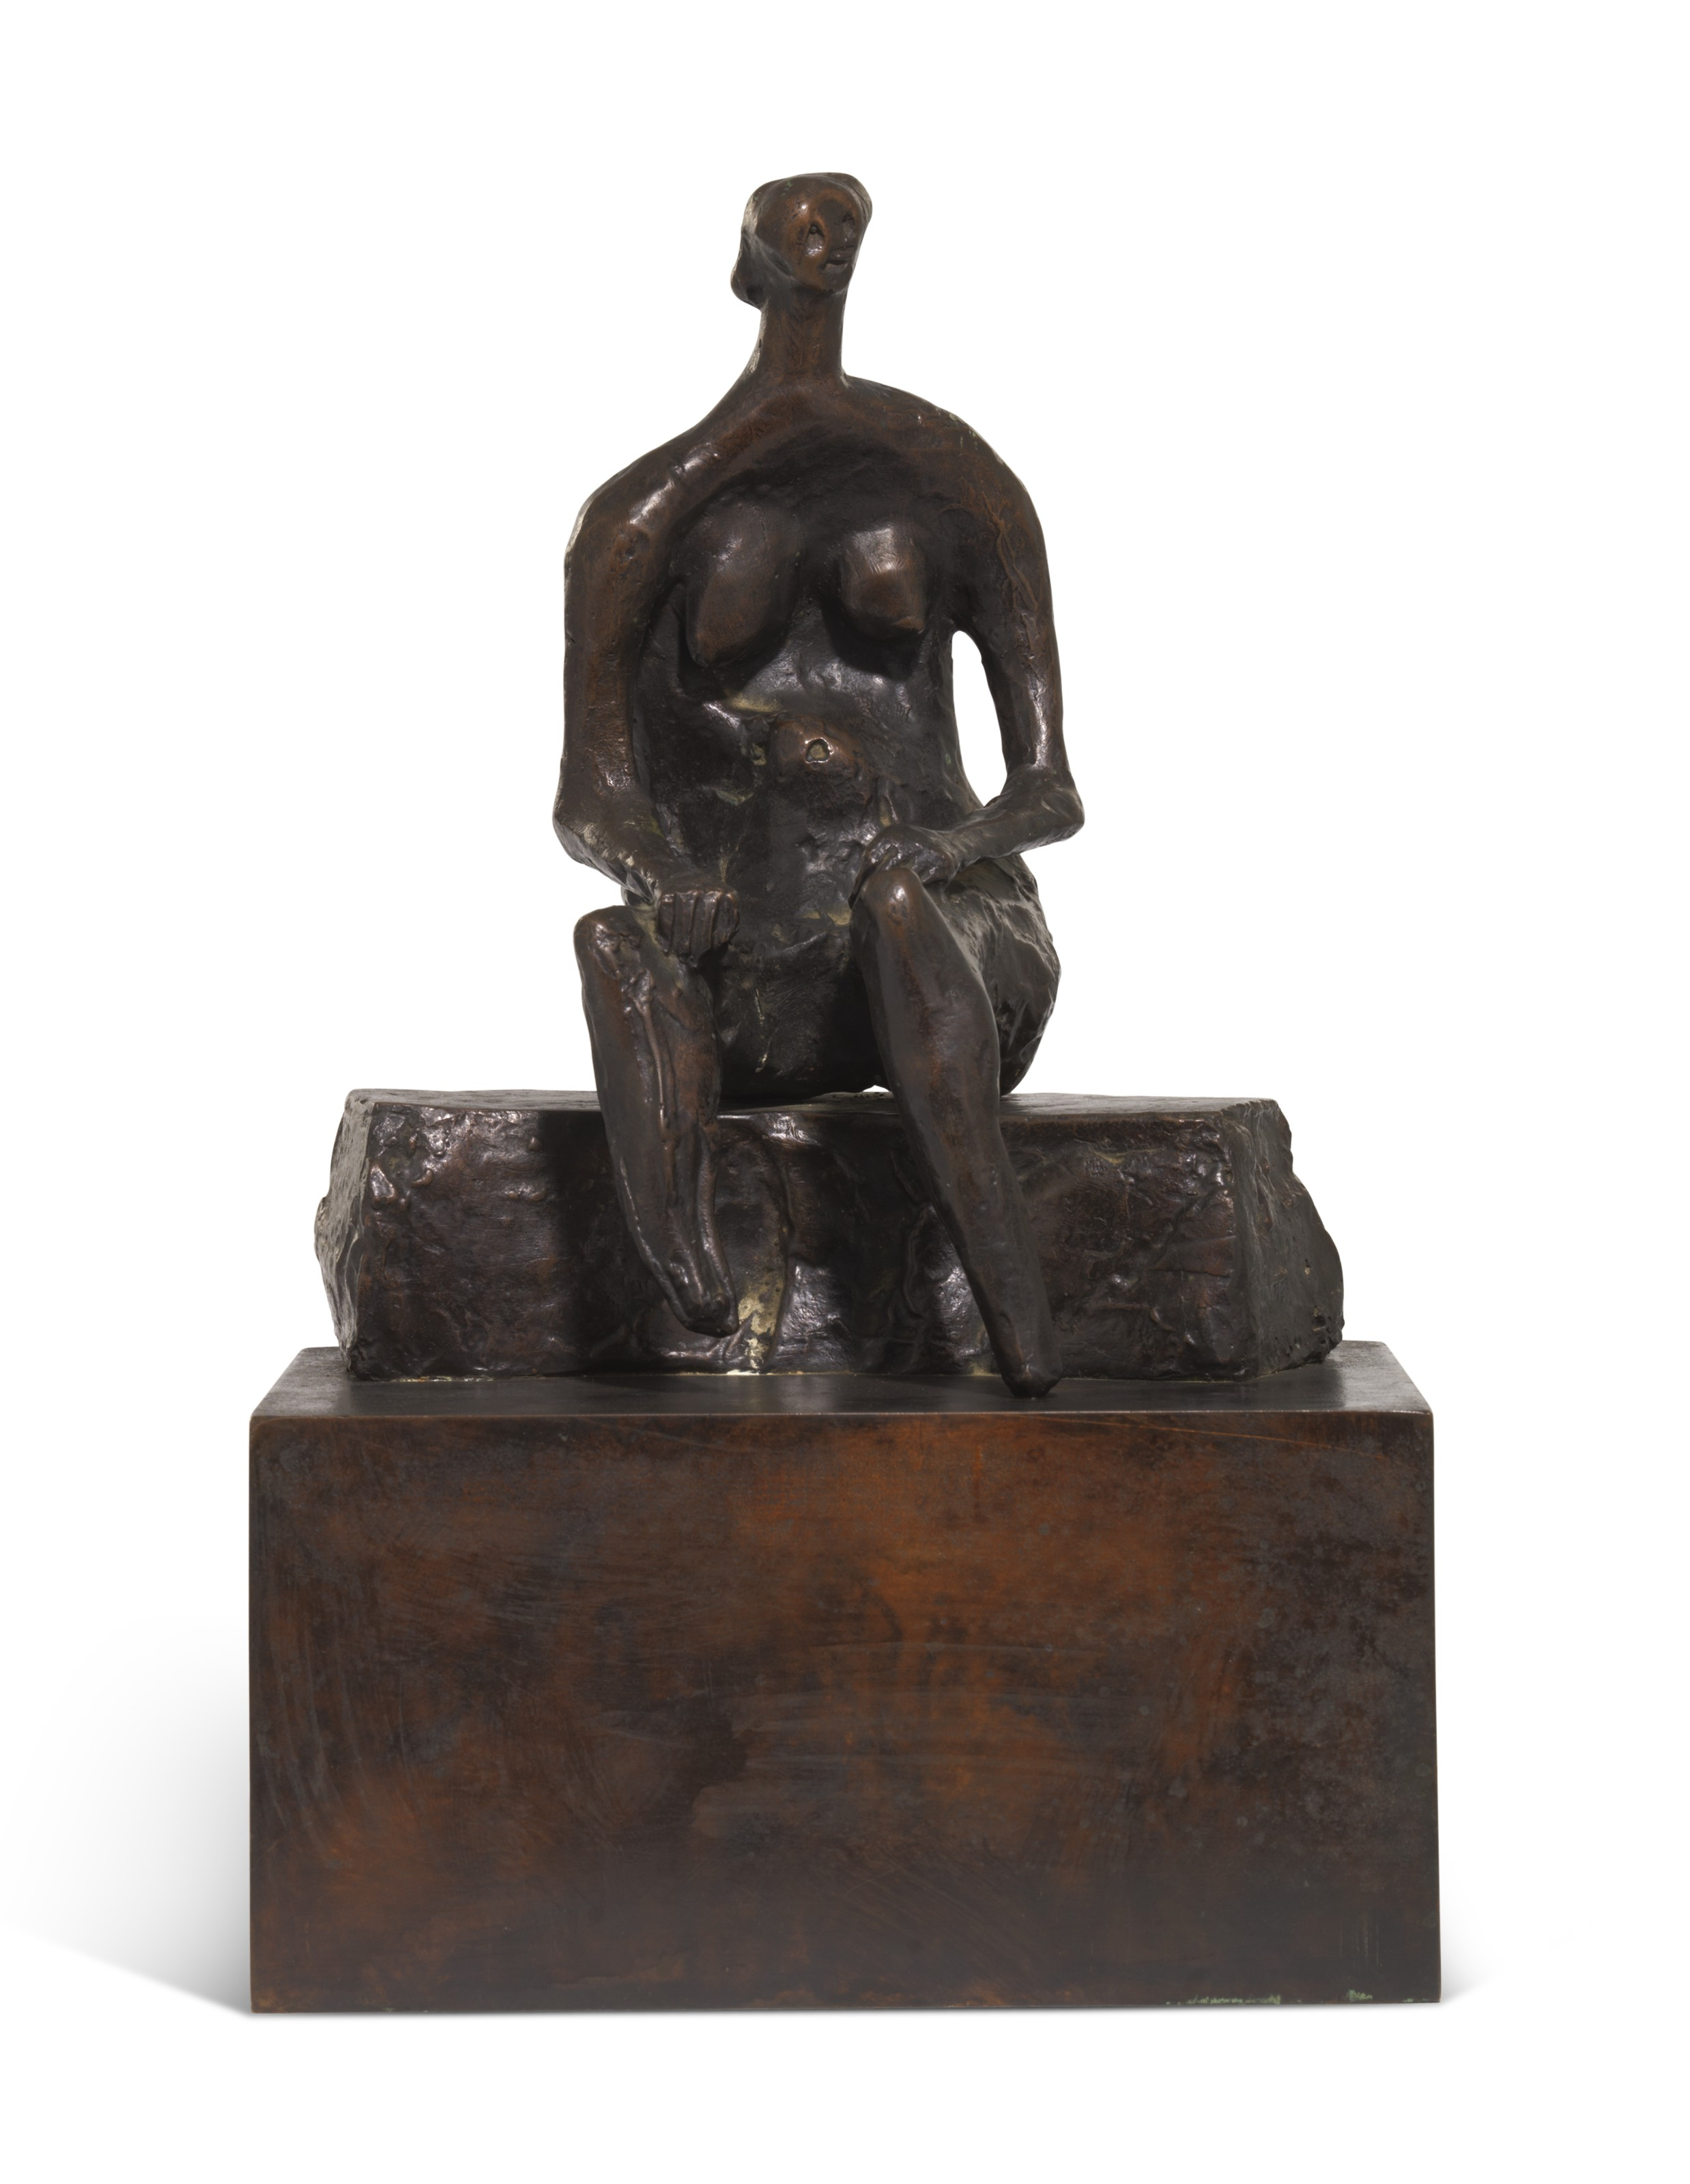 Henry Moore, O.M., C.H., (1898-1986), Seated Woman on Curved Block, 1957-64. 8⅛ in (20.5 cm) high, excluding bronze base. Estimate £60,000-80,000. Offered in Julians Park and Six Private Collections Live on 8 June 2021 at Christie's in London